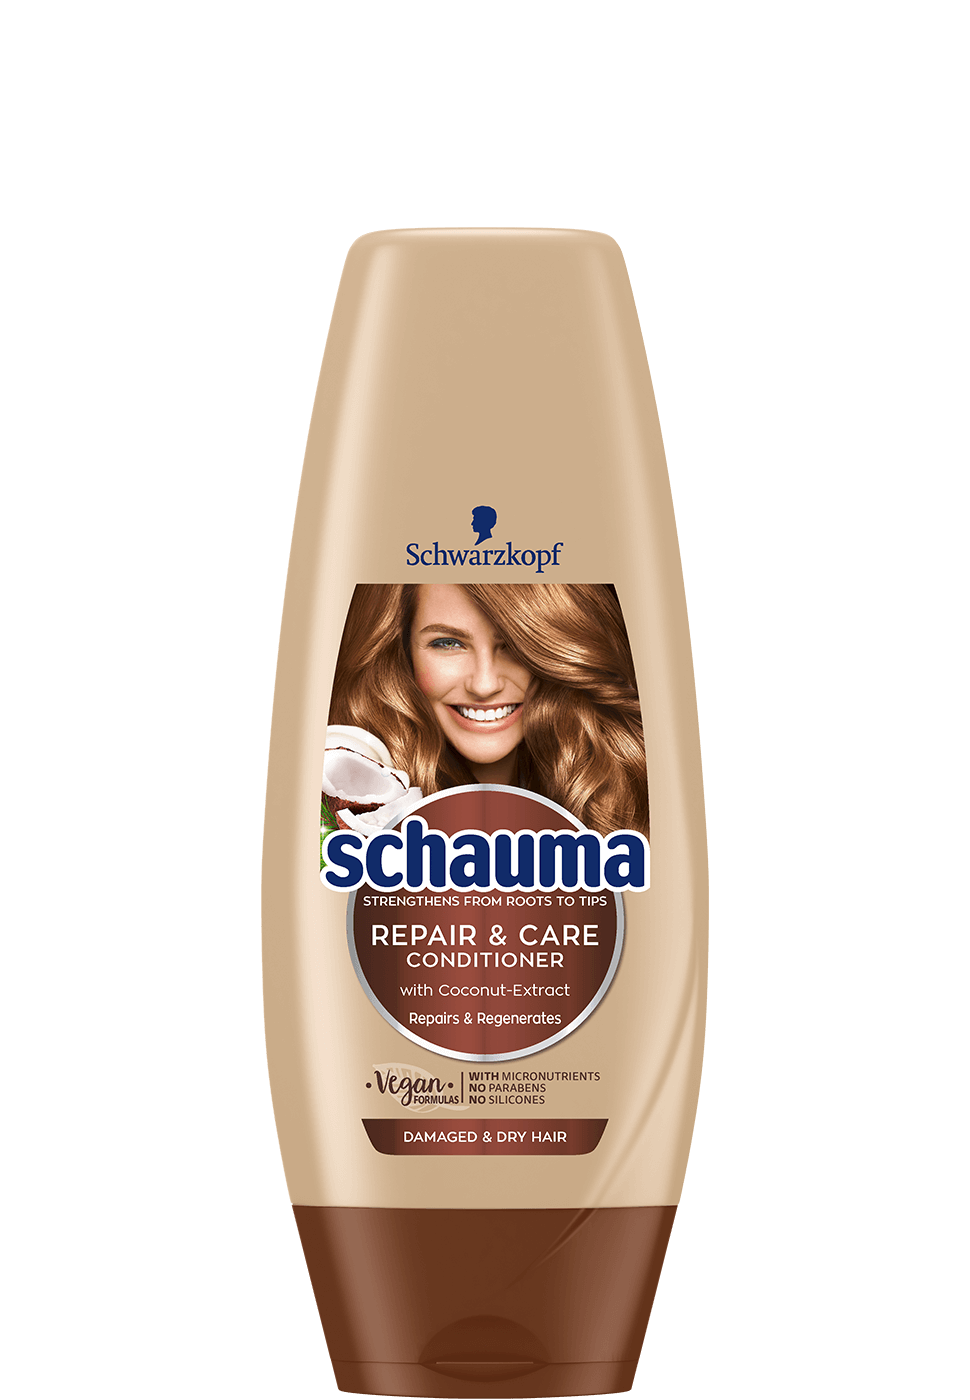 schauma_com_repair_and_care_conditioner_970x1400